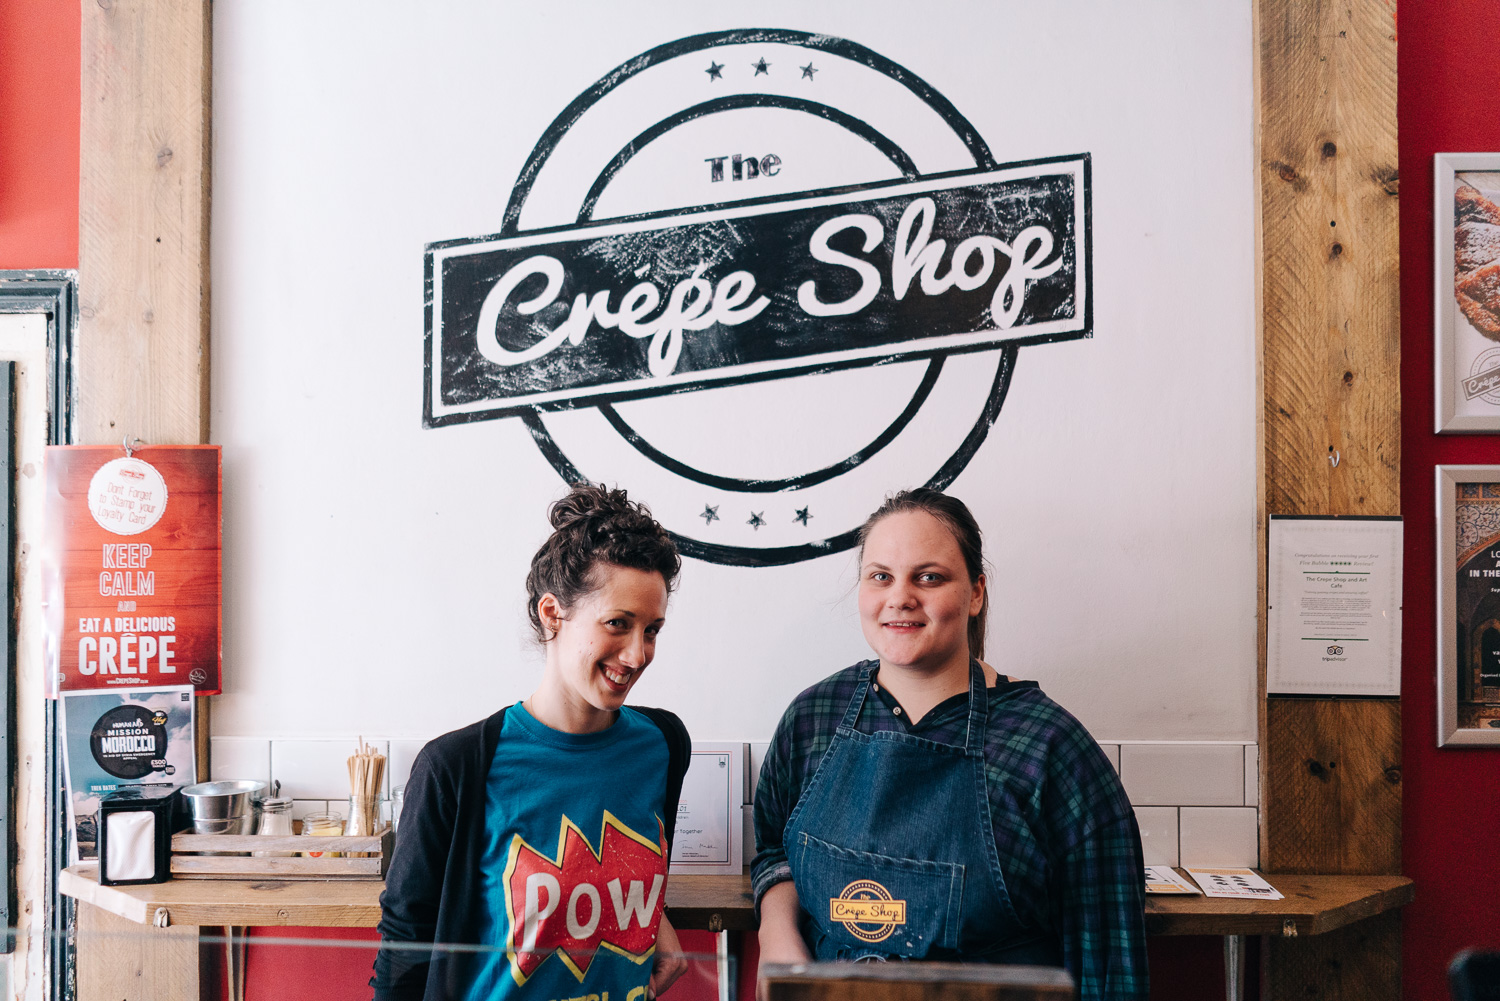 The Crepe Shop business owner in Whitechapel receiving social media MOT from digital mentor.